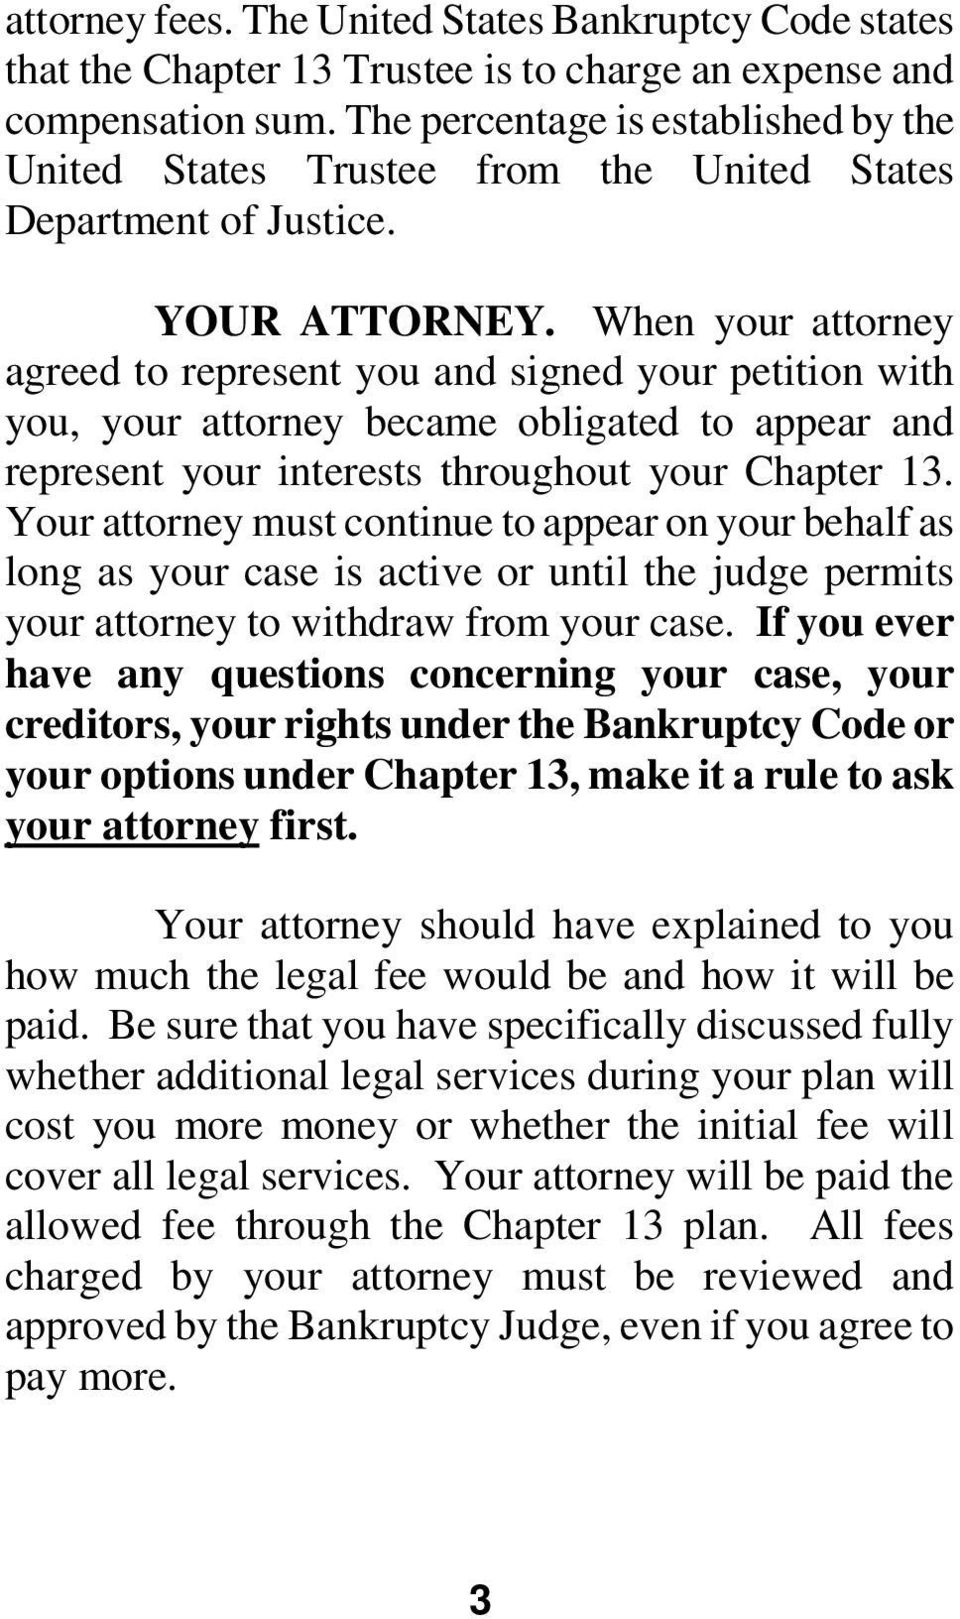 When your attorney agreed to represent you and signed your petition with you, your attorney became obligated to appear and represent your interests throughout your Chapter 13.